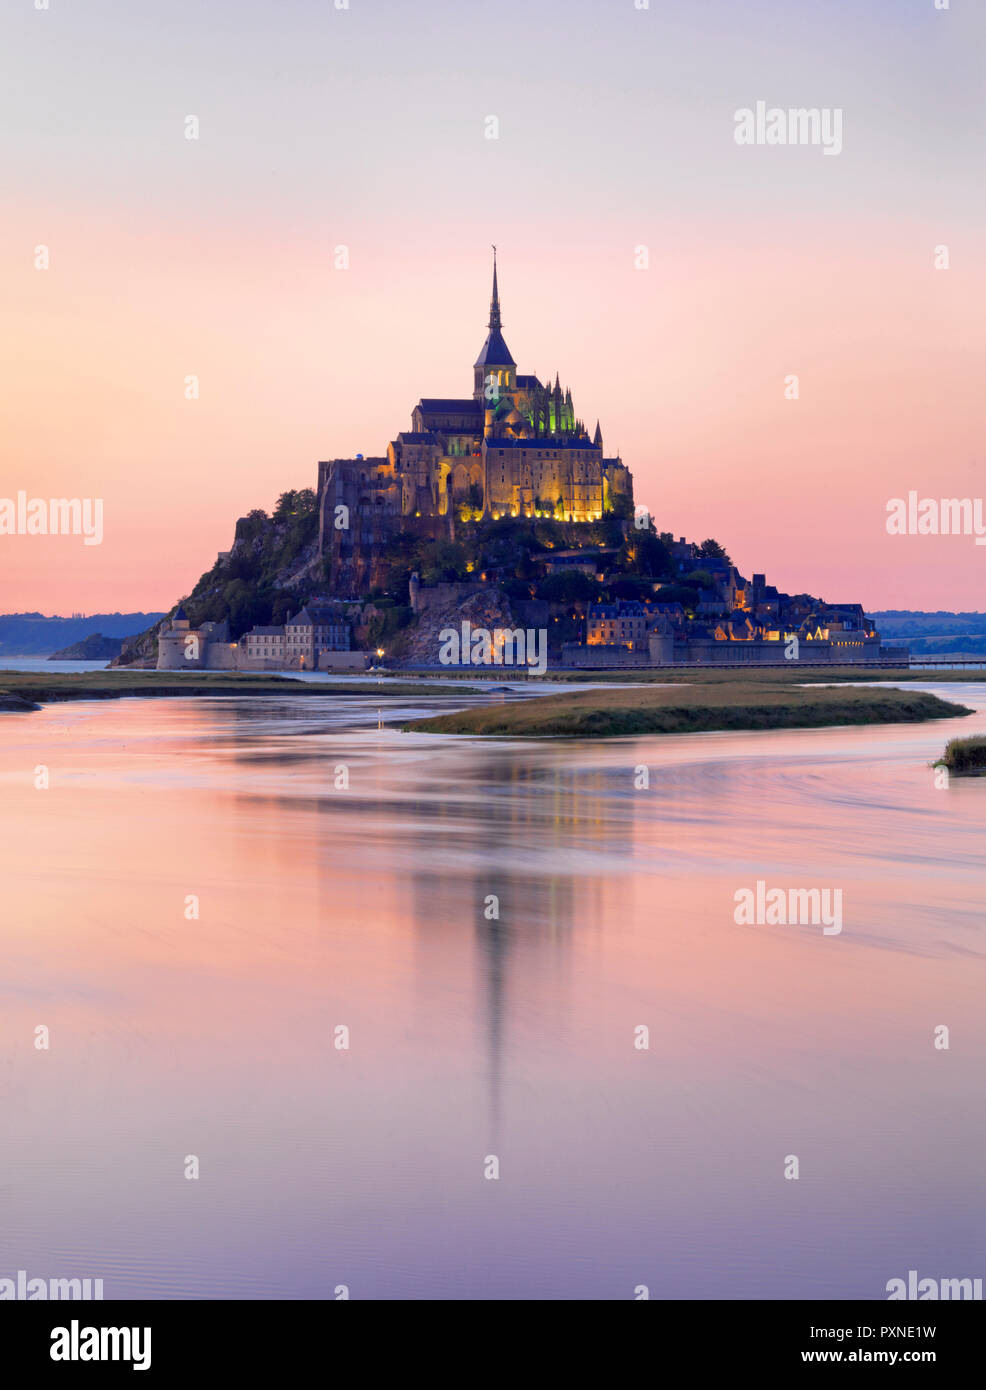 France, Normandy, Le Mont Saint Michel reflected in river at night - Stock Image